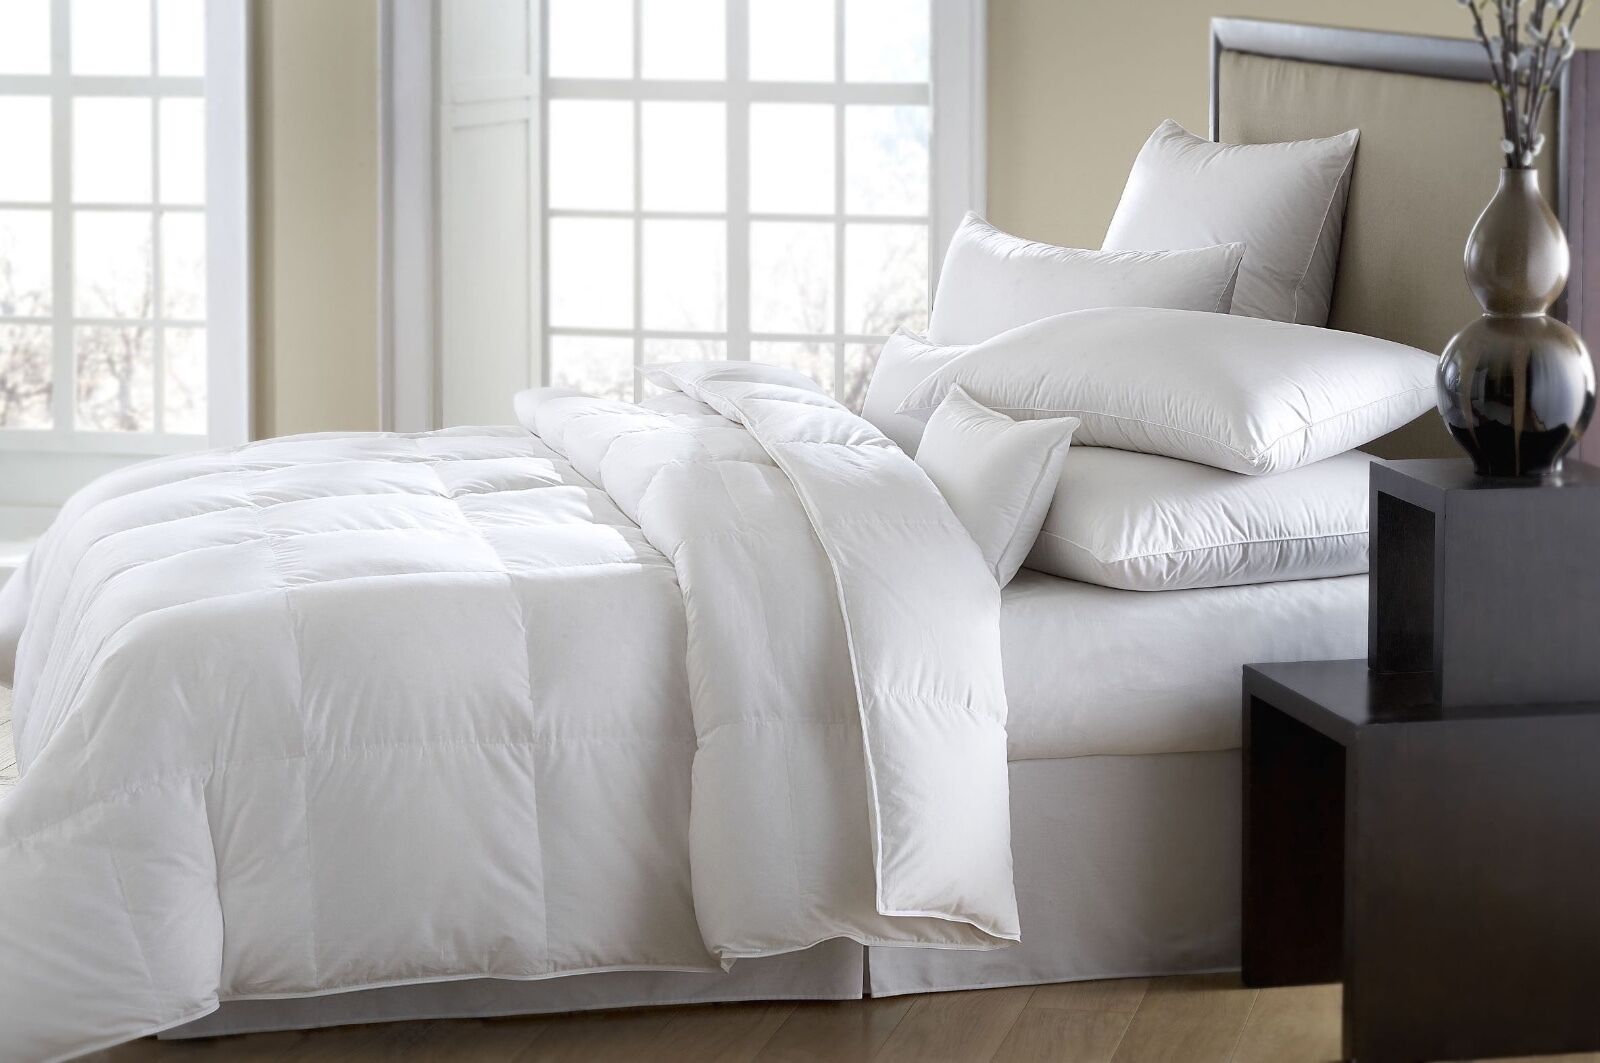 The ULTIMATE Down Alternative Comforter Duvet Insert Washable TWIN QUEEN KING